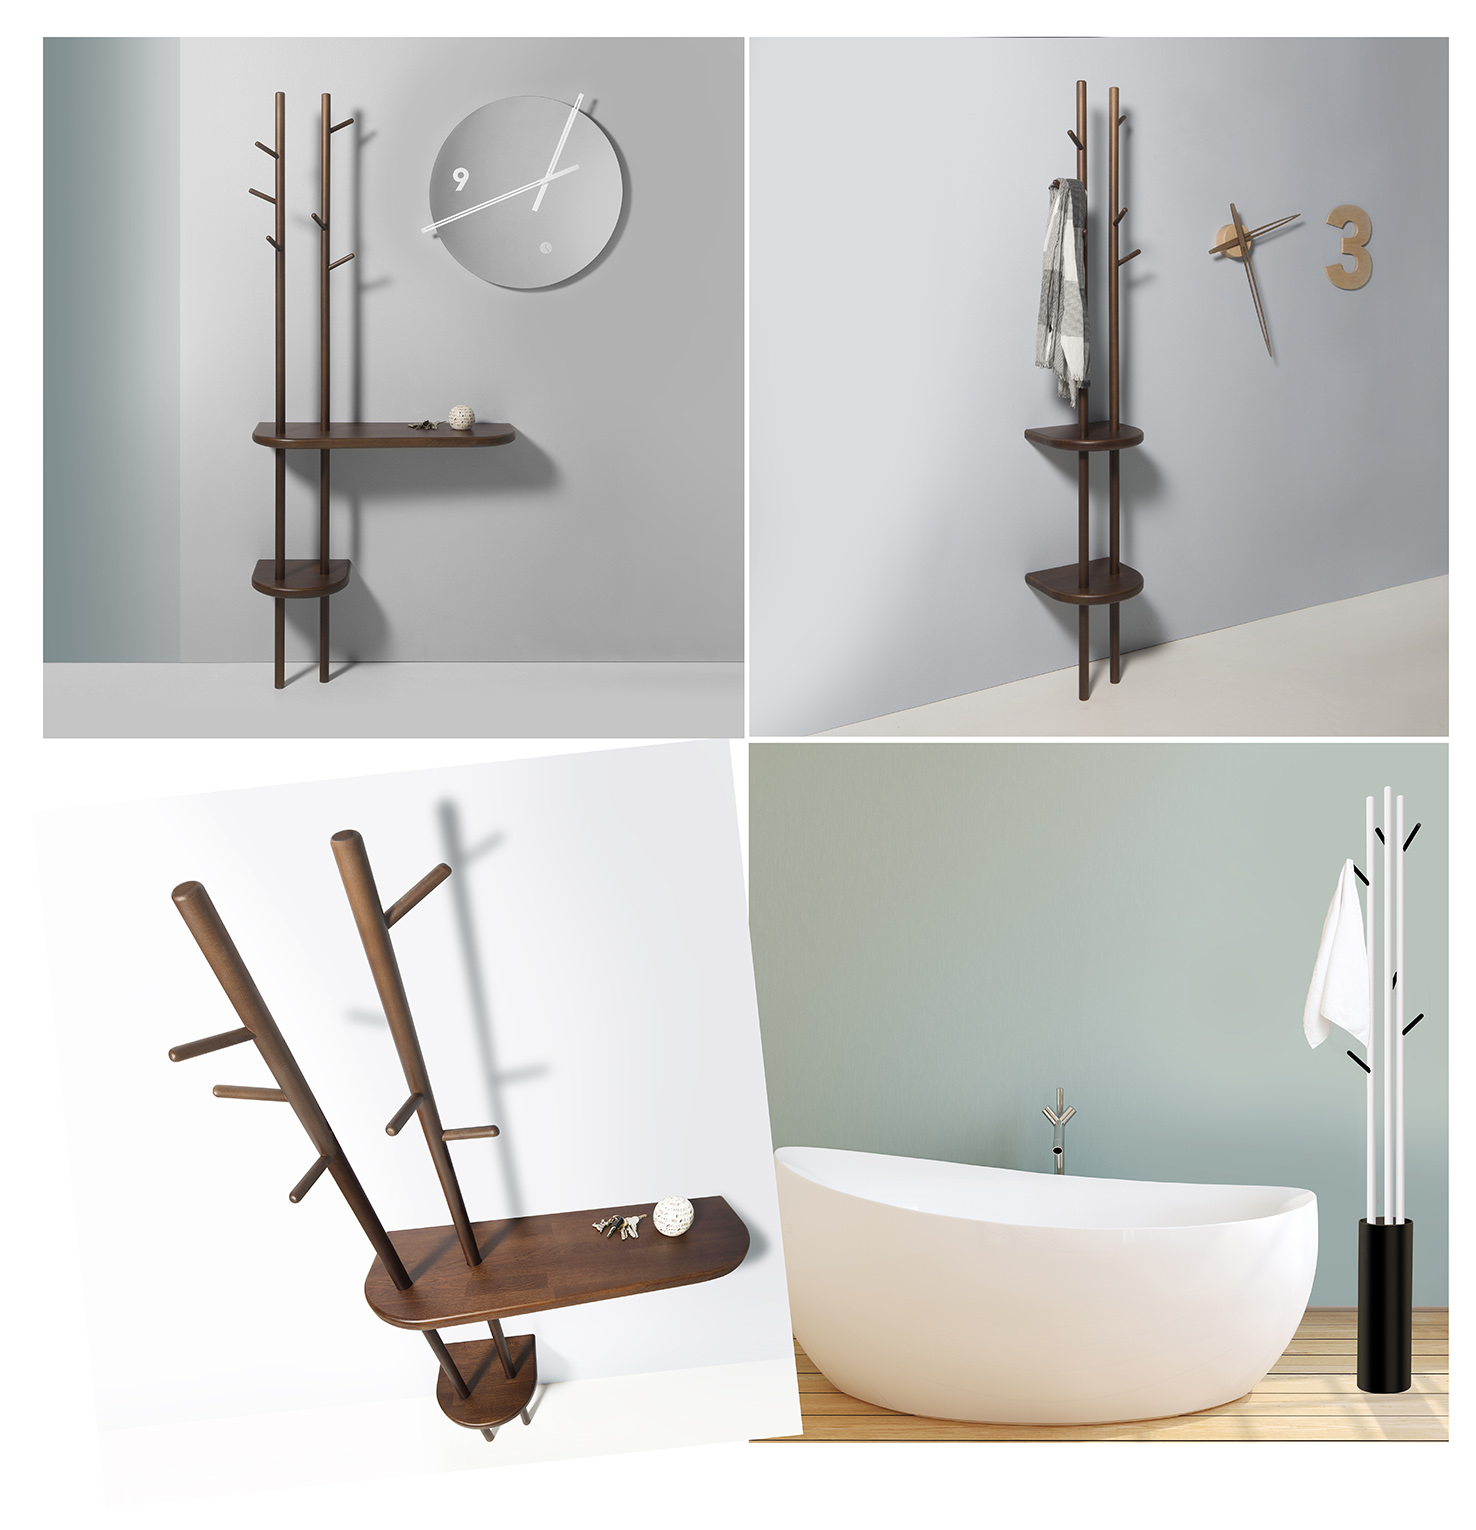 Home Accessoires Tothora Tothora Presents Its New Section Home Accessories